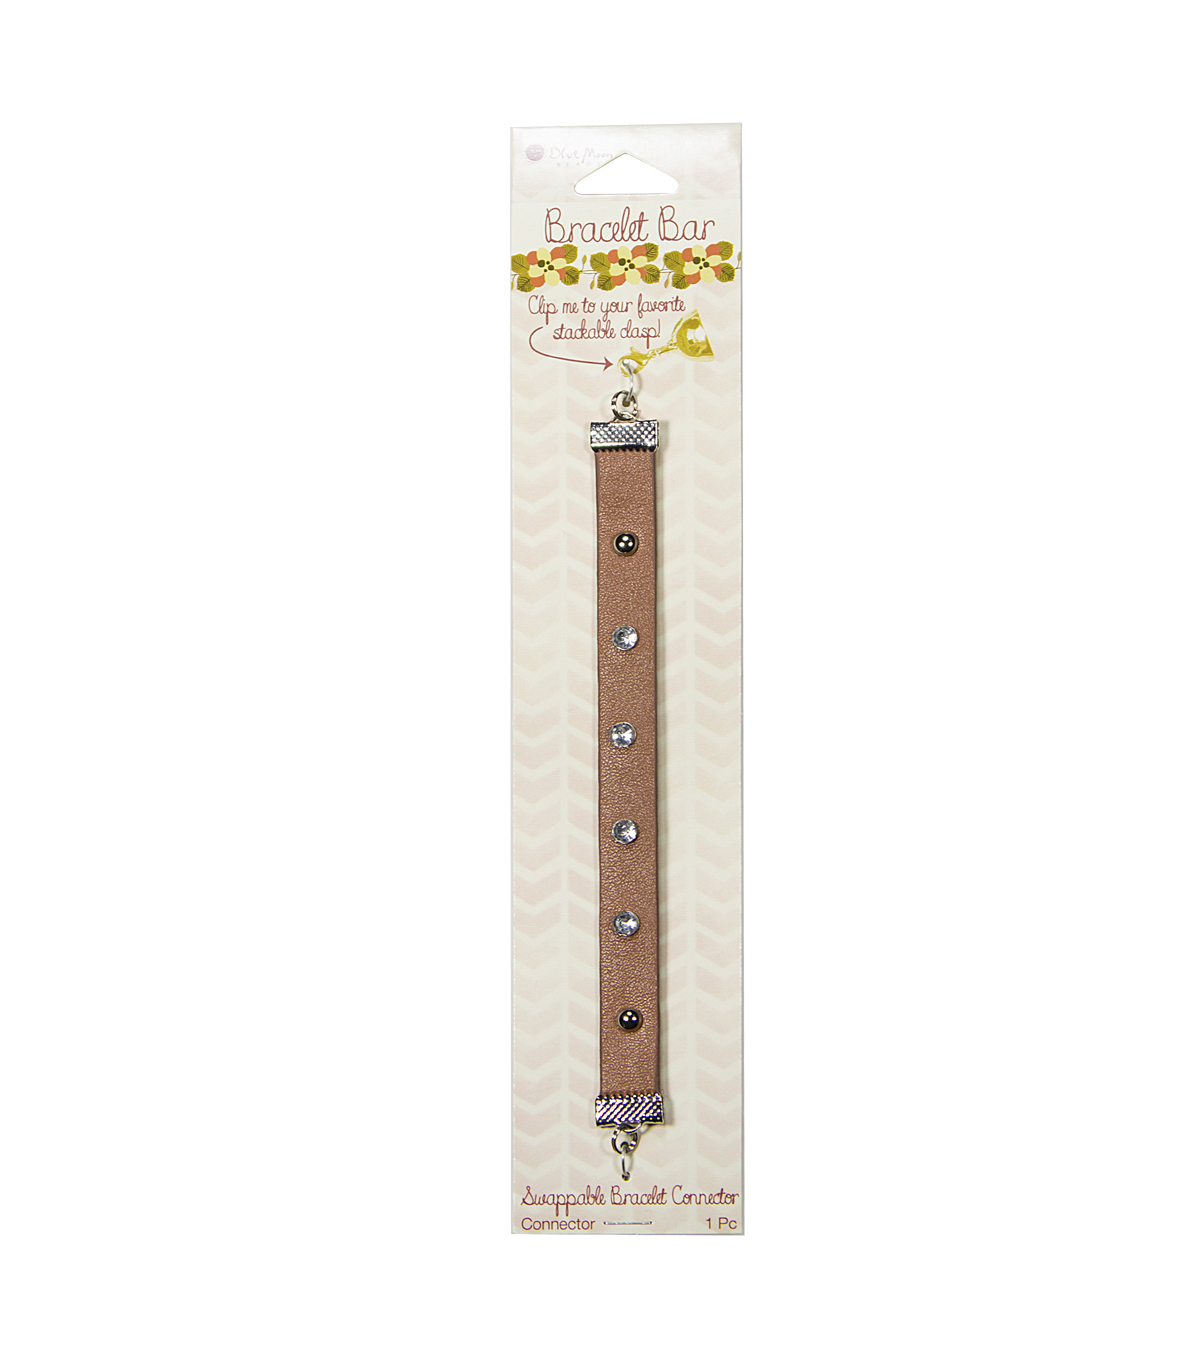 Bracelet Bar Connector Faux Leather with Studs/Rhinestones, Tan